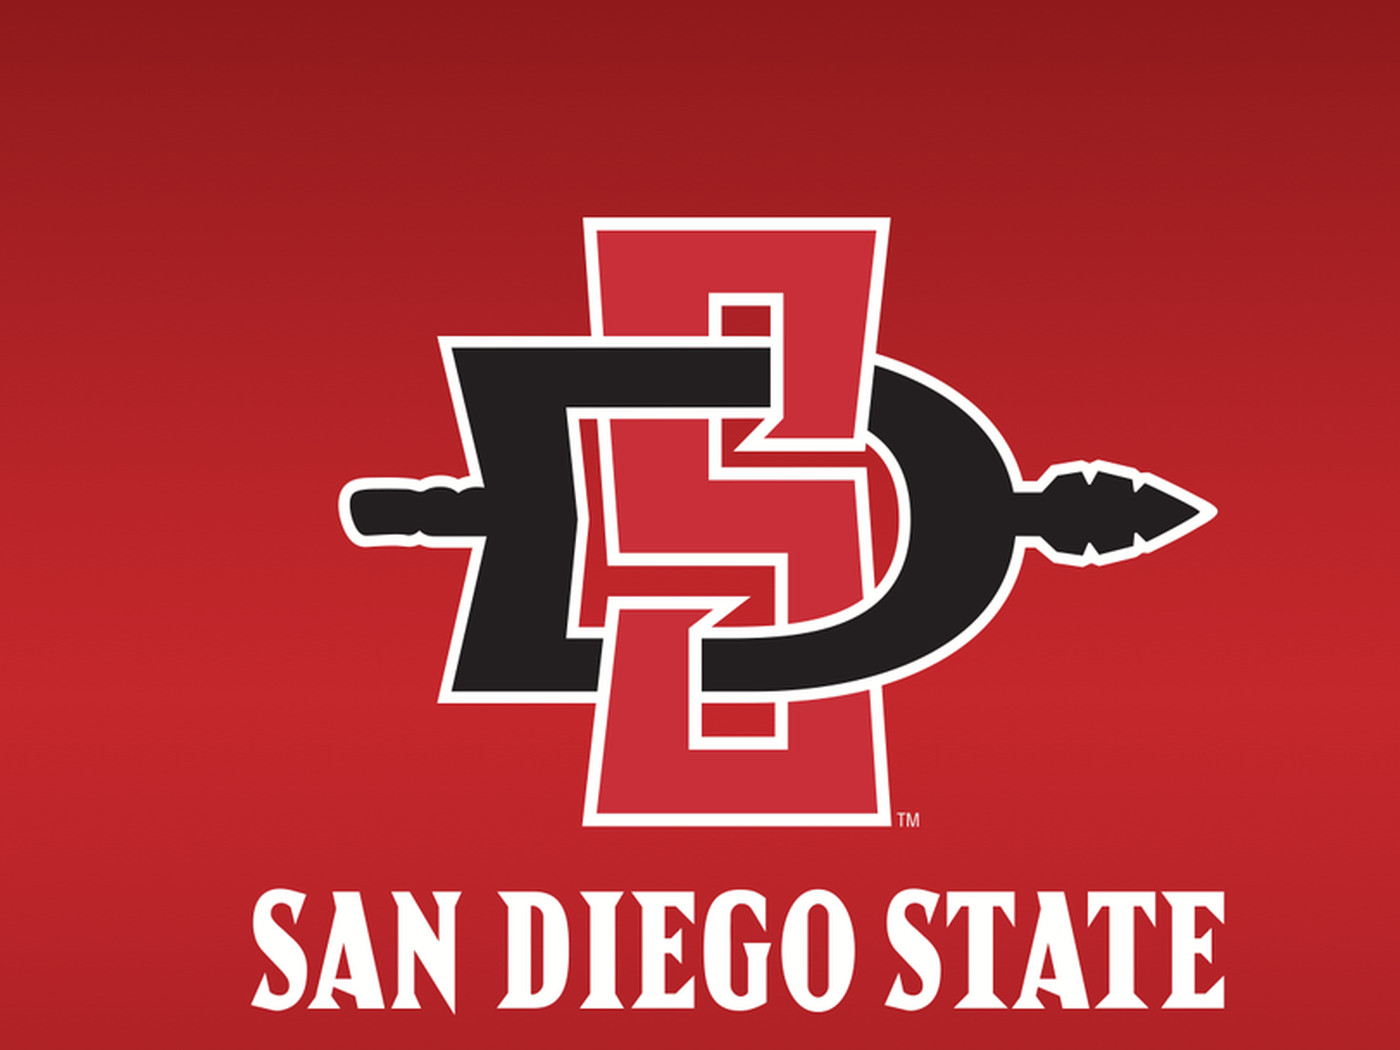 San Diego State new logo revealed - SBNation.com